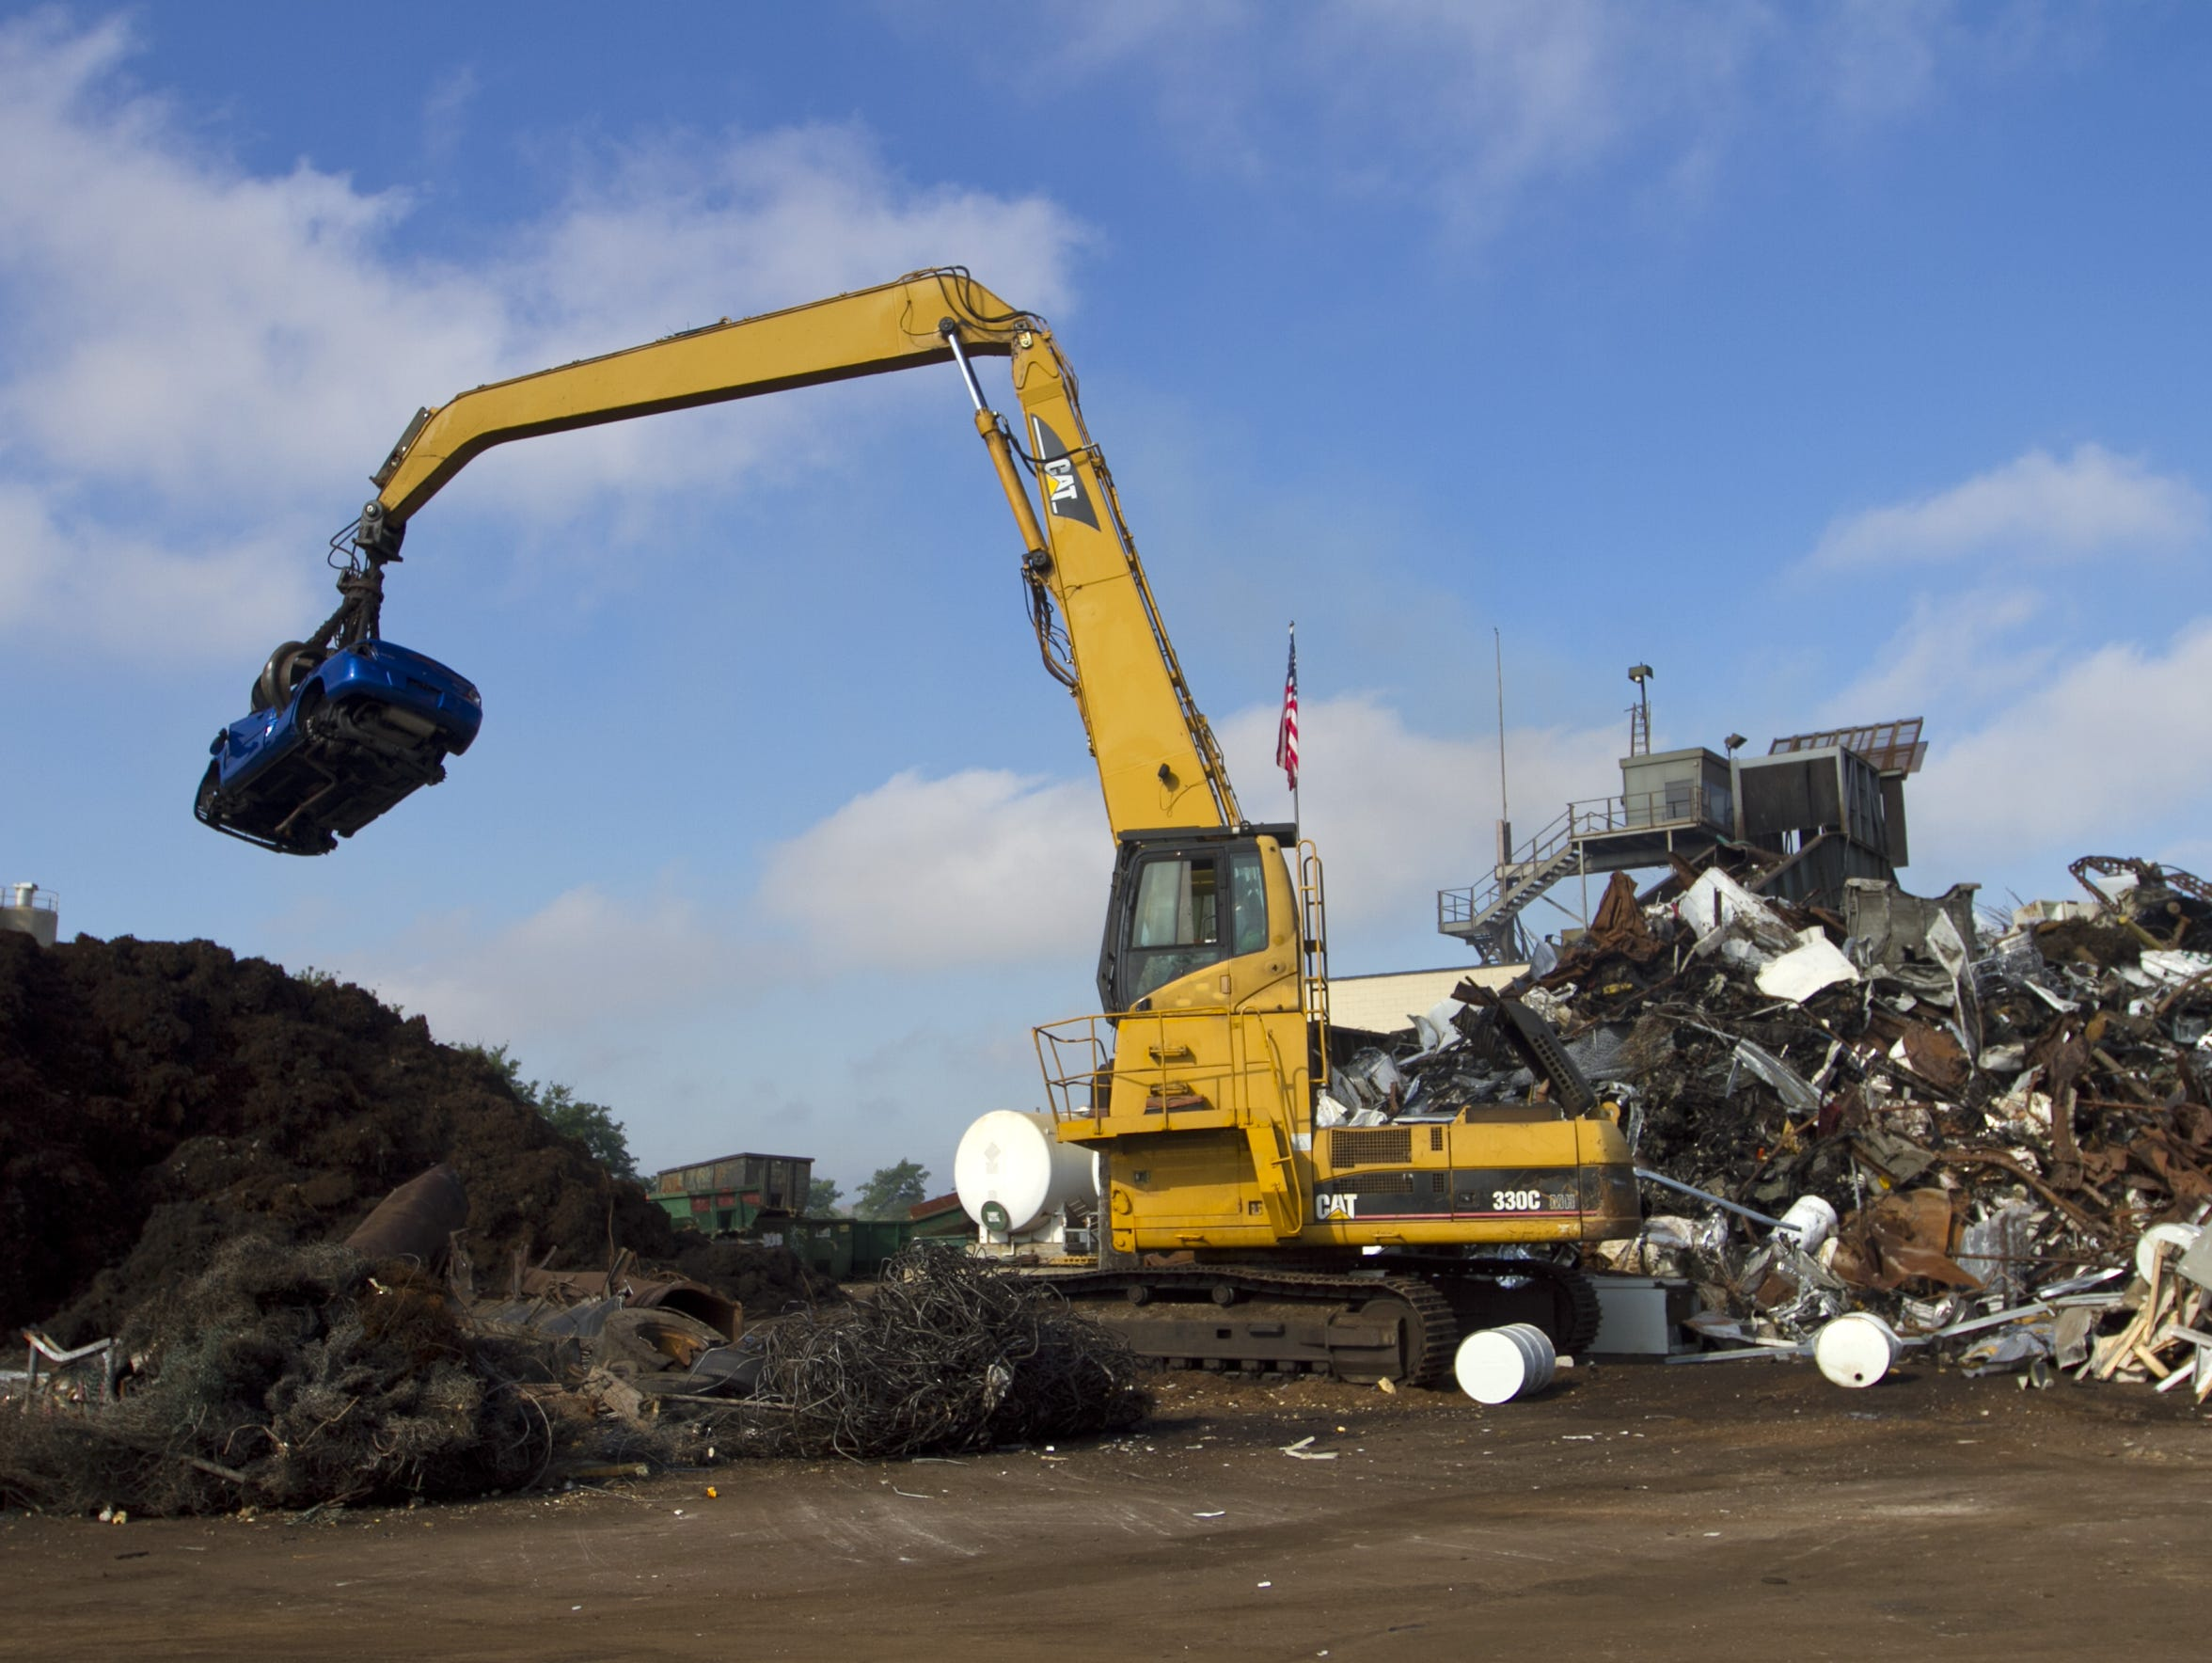 A car is lifted onto the automobile shredder at Garden